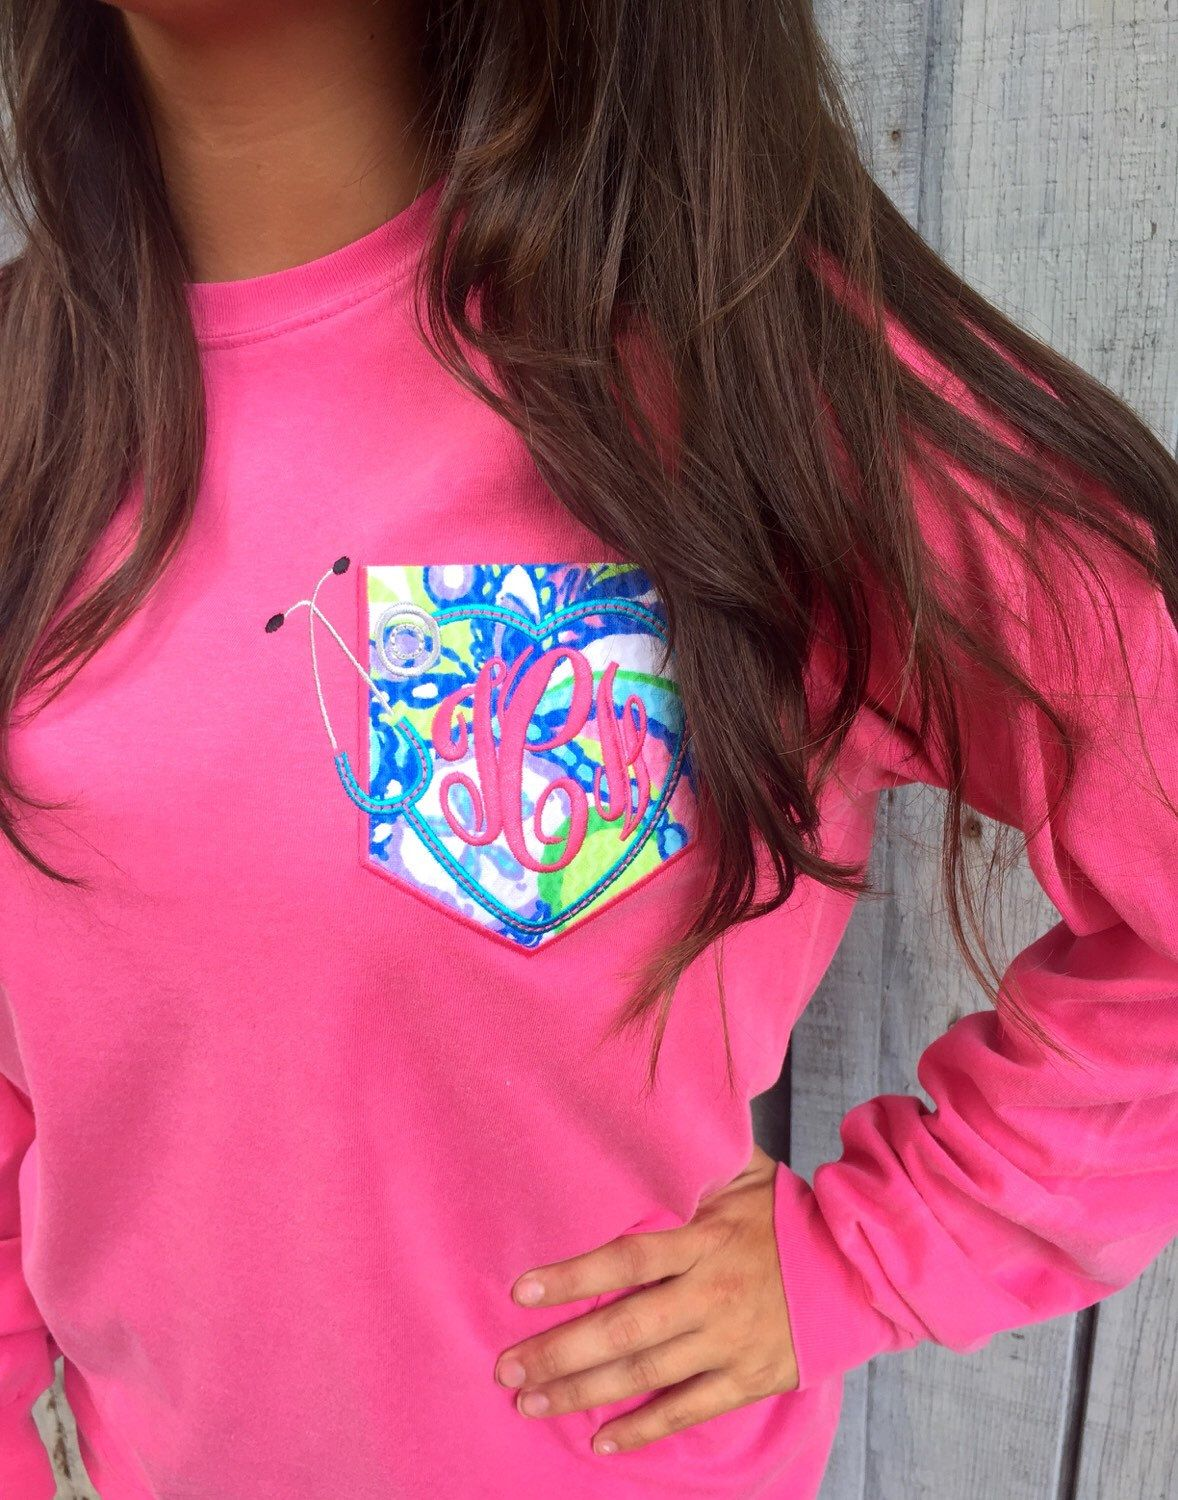 Long Sleeved Comfort Color Nursing t-shirt with Monogram and Lilly Pulitzer Pocket Stethoscope by TantrumEmbroidery on Etsy https://www.etsy.com/listing/244009165/long-sleeved-comfort-color-nursing-t